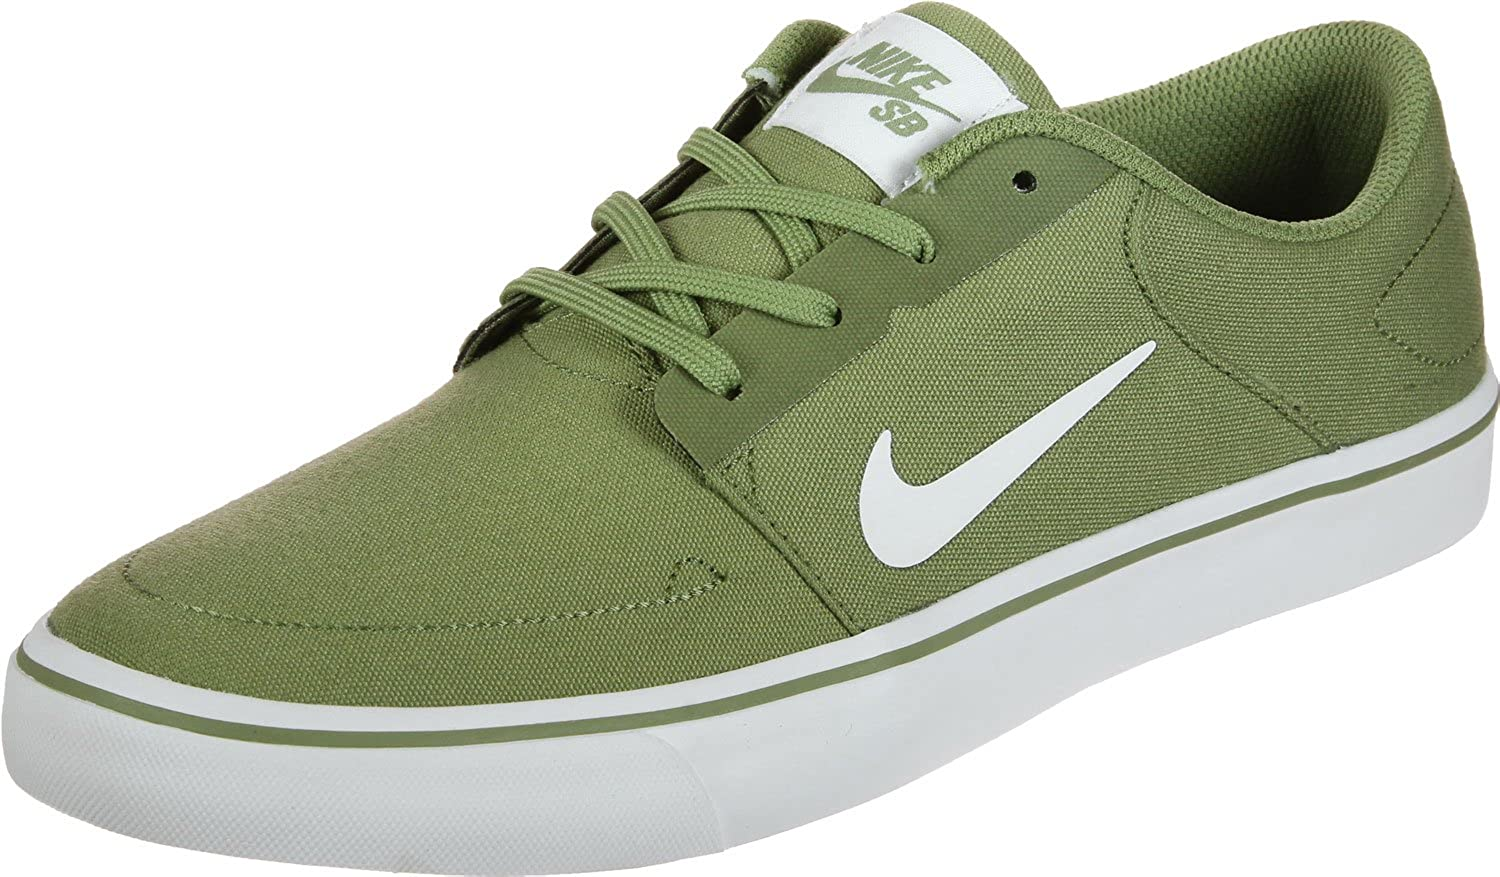 Nike SB Portmore Canvas Mens Trainers 723874 Sneakers Shoes (UK